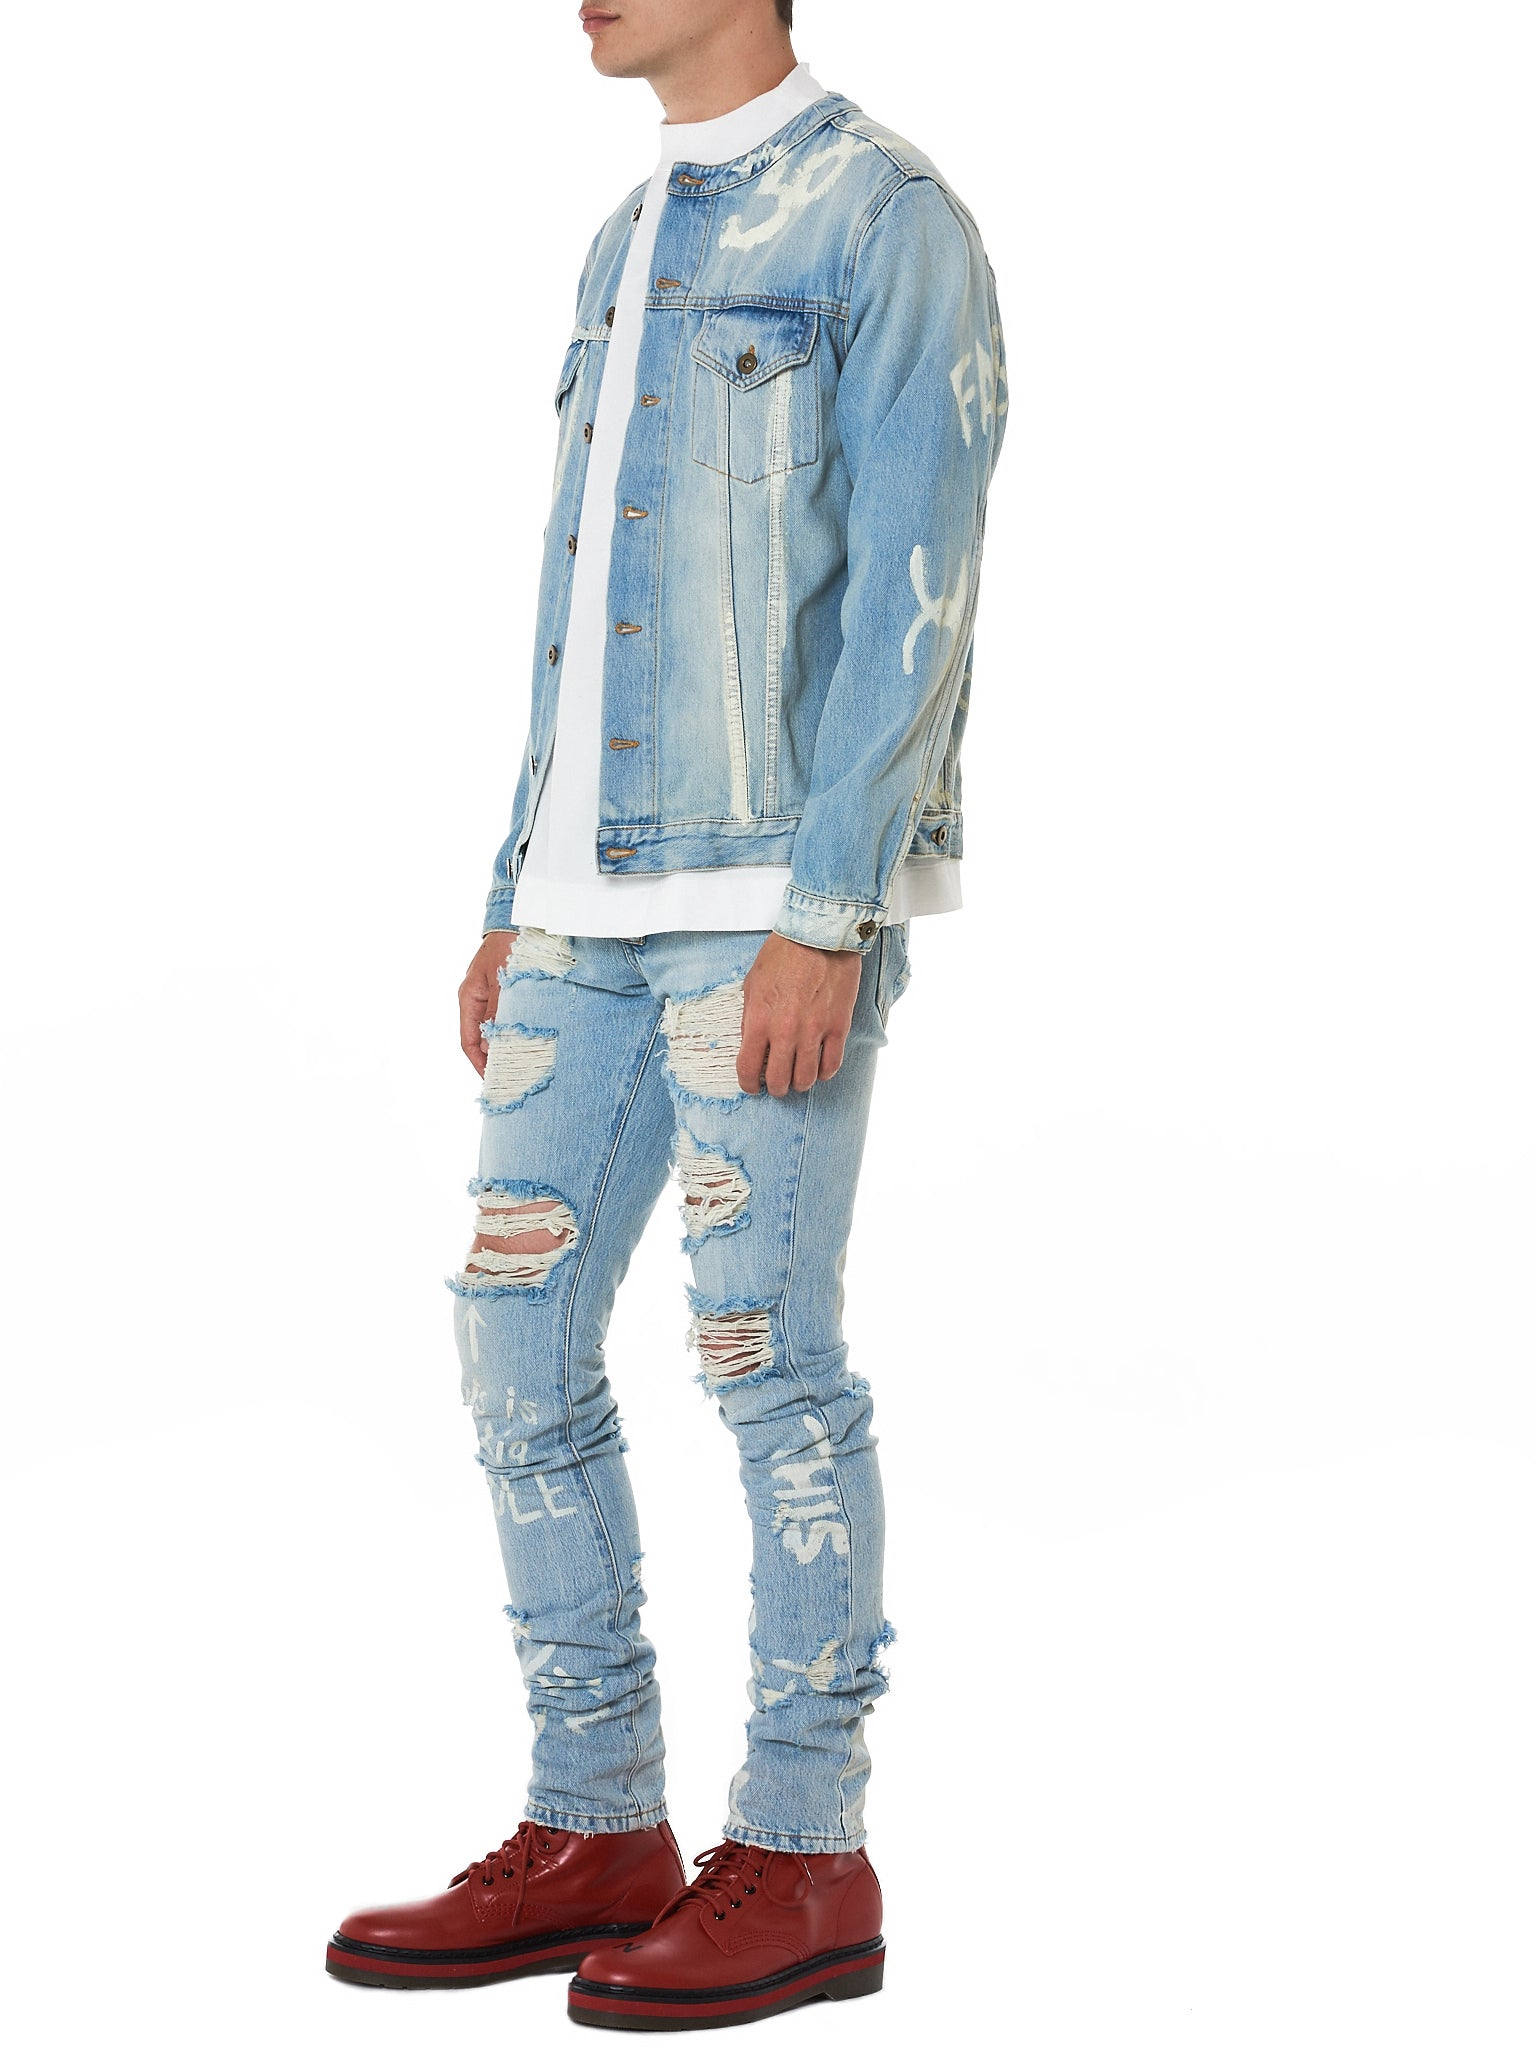 IH NOM UH NIT Distressed Denim - Hlorenzo Style